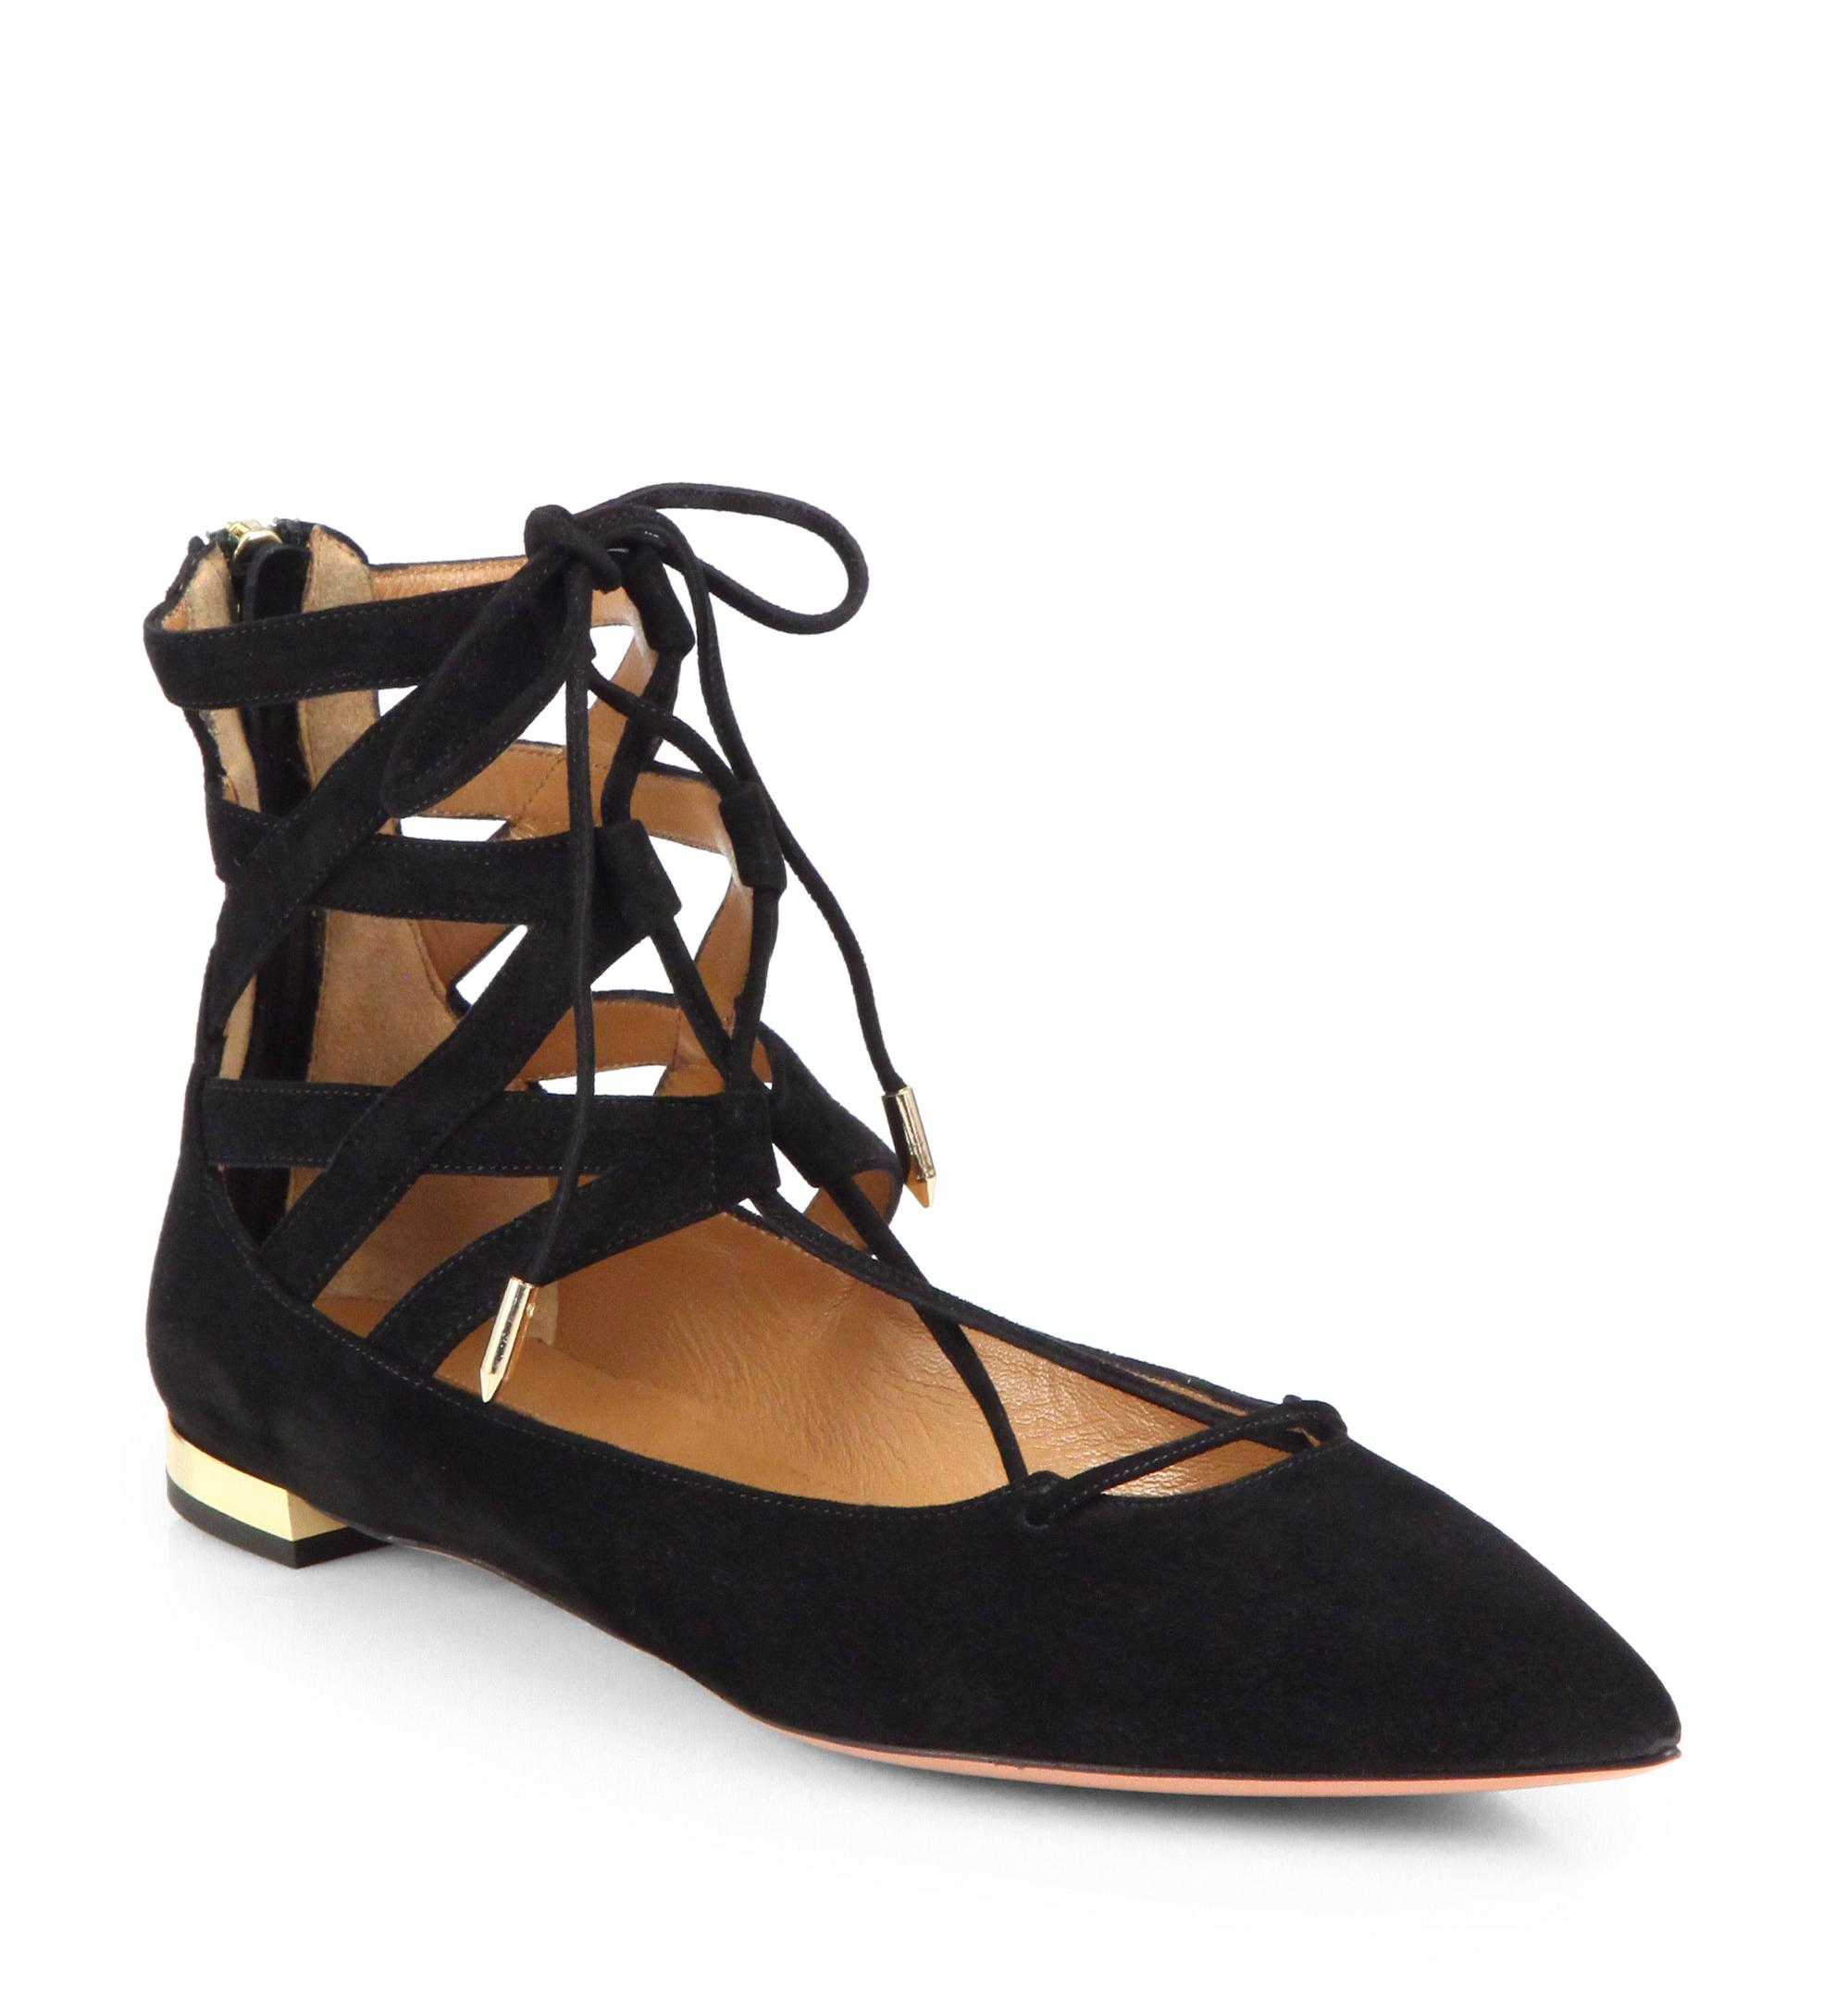 clearance view Aquazzura Belgravia Leather Flats buy cheap footaction discount reliable free shipping 100% guaranteed discount shopping online HAzY8951w